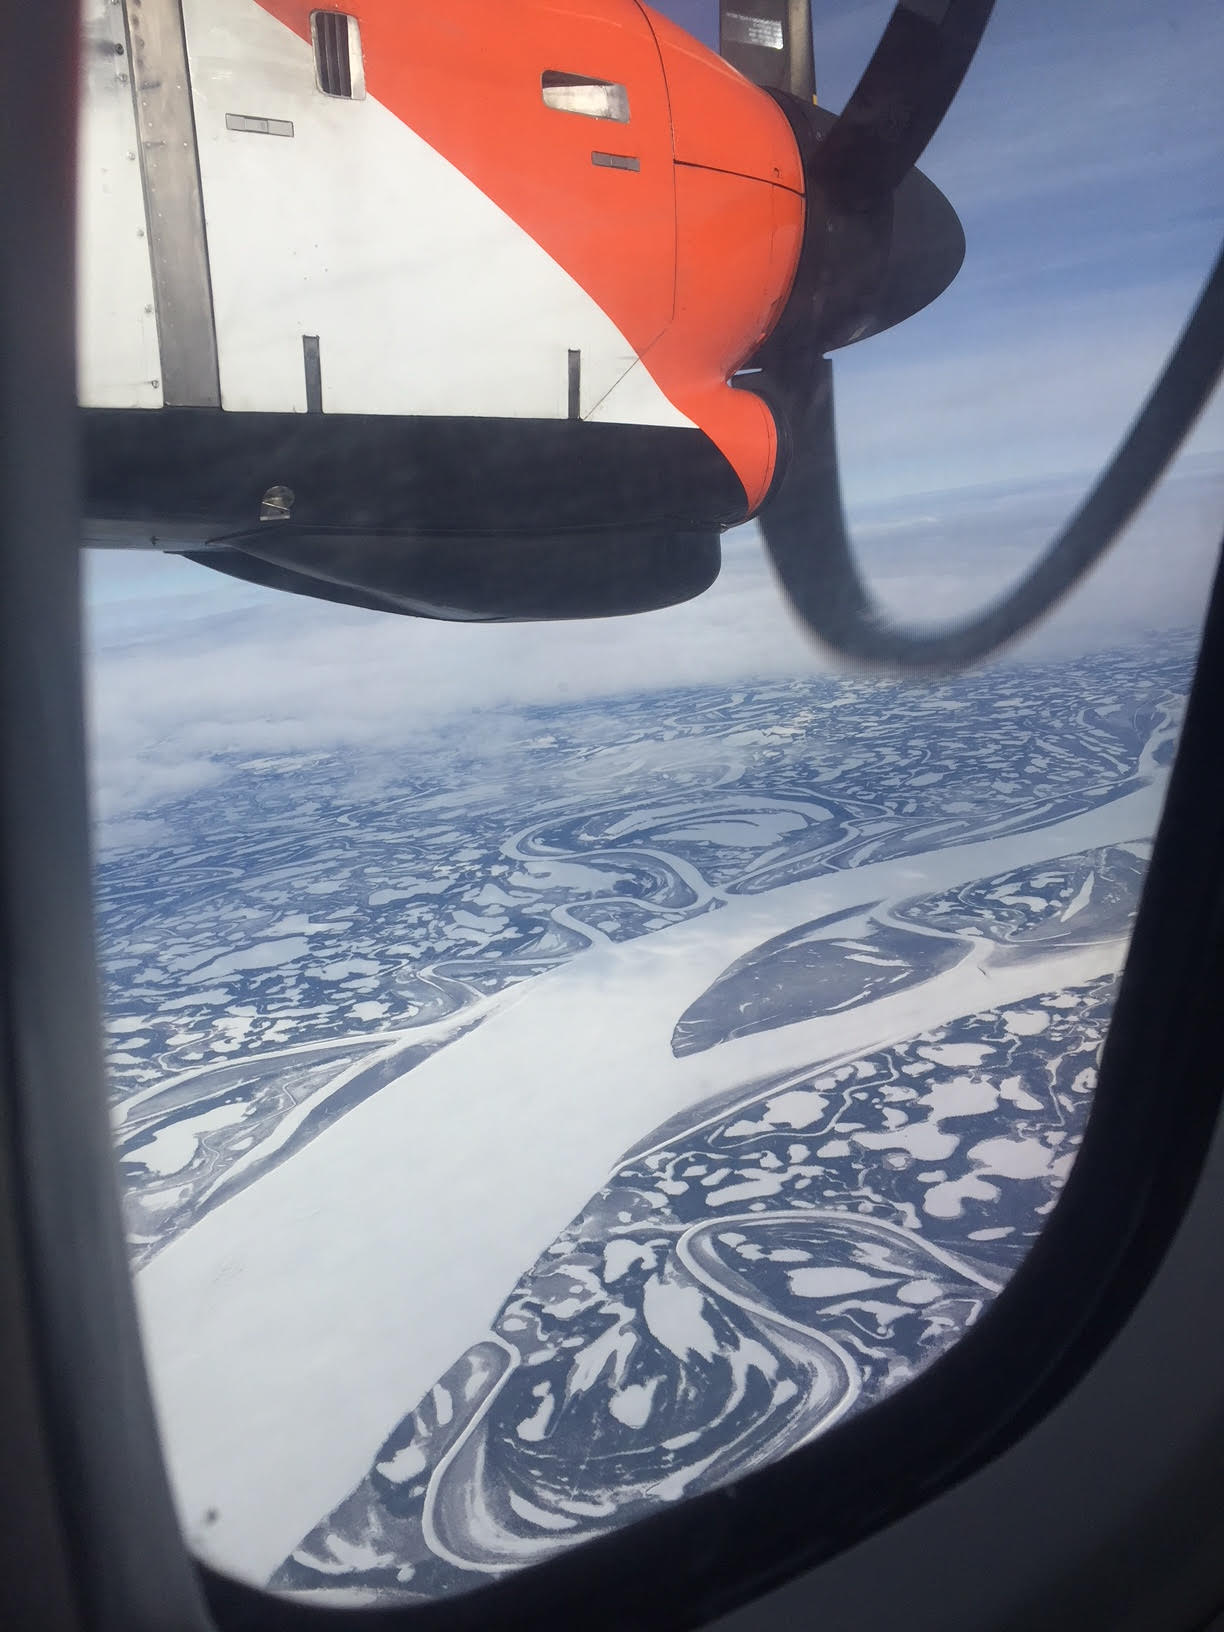 Heading toward Inuvik the frozen rivers and lakes create magical patterns